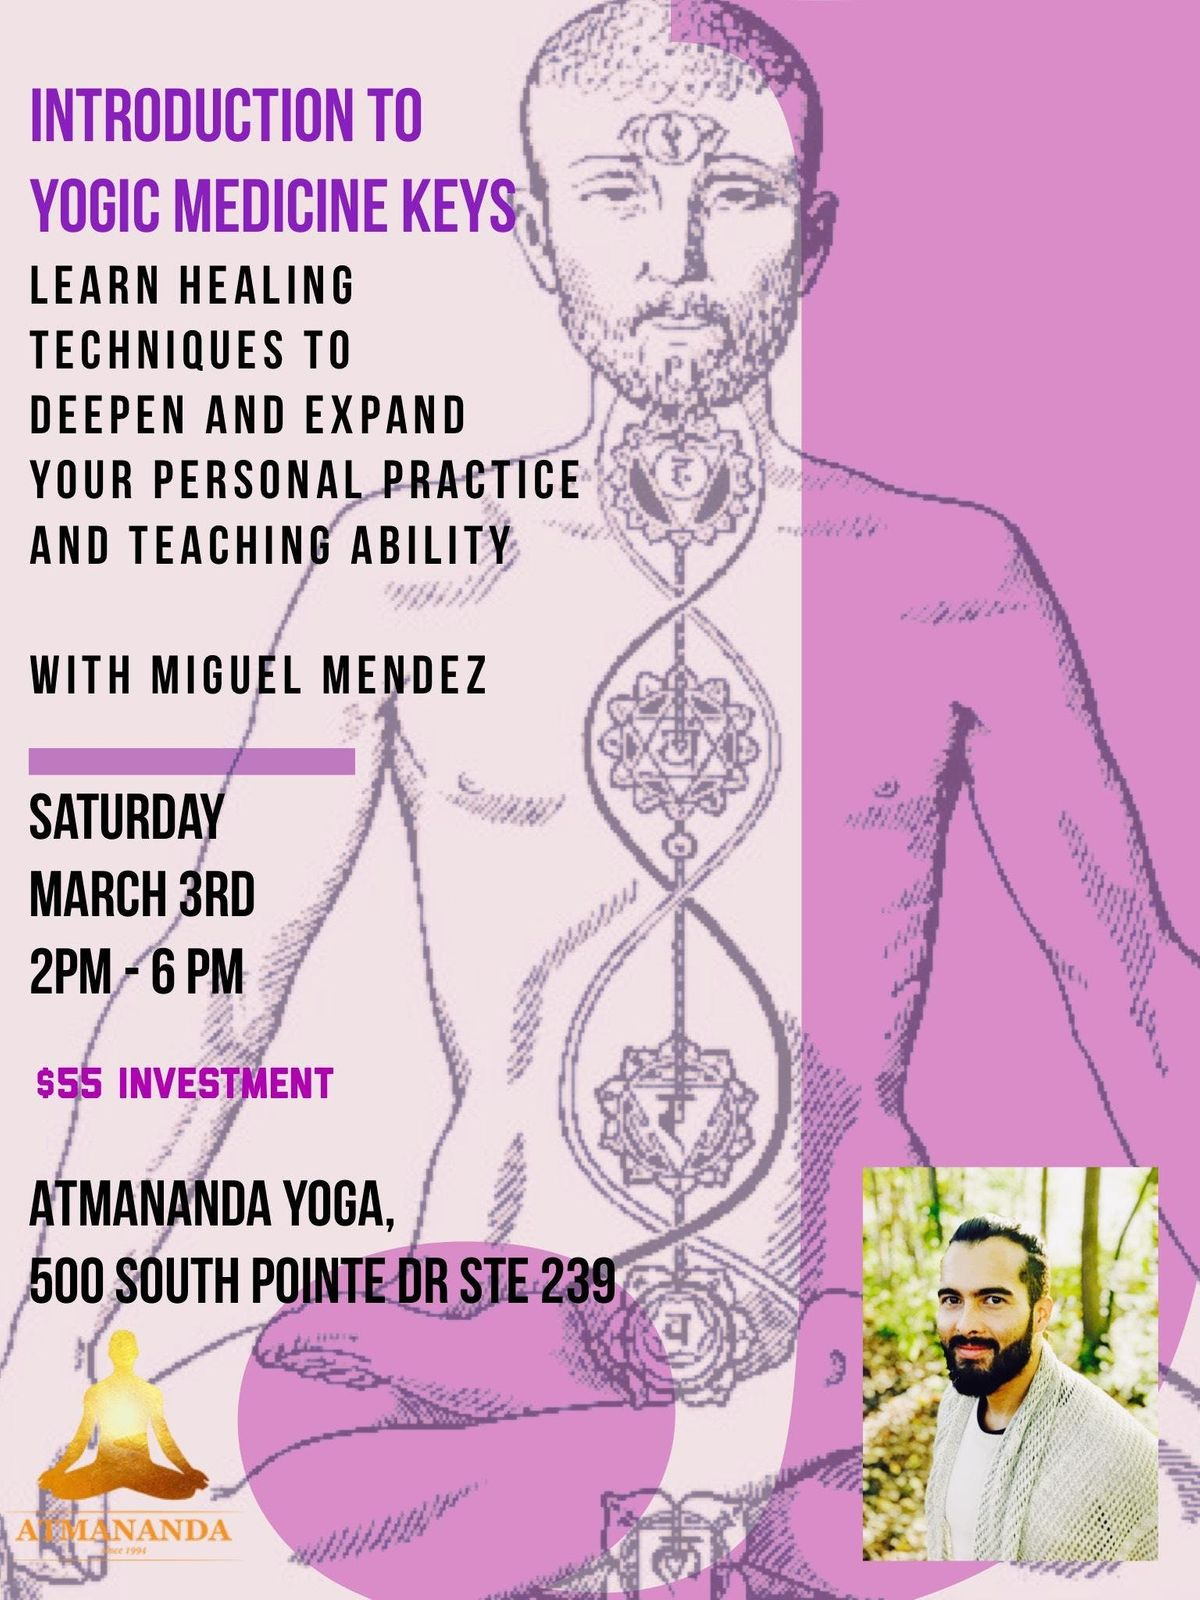 Introduction to Yogic Medicine Keys A course to awaken the ancient healer within. With Miguel Mendez PlantYogiChef